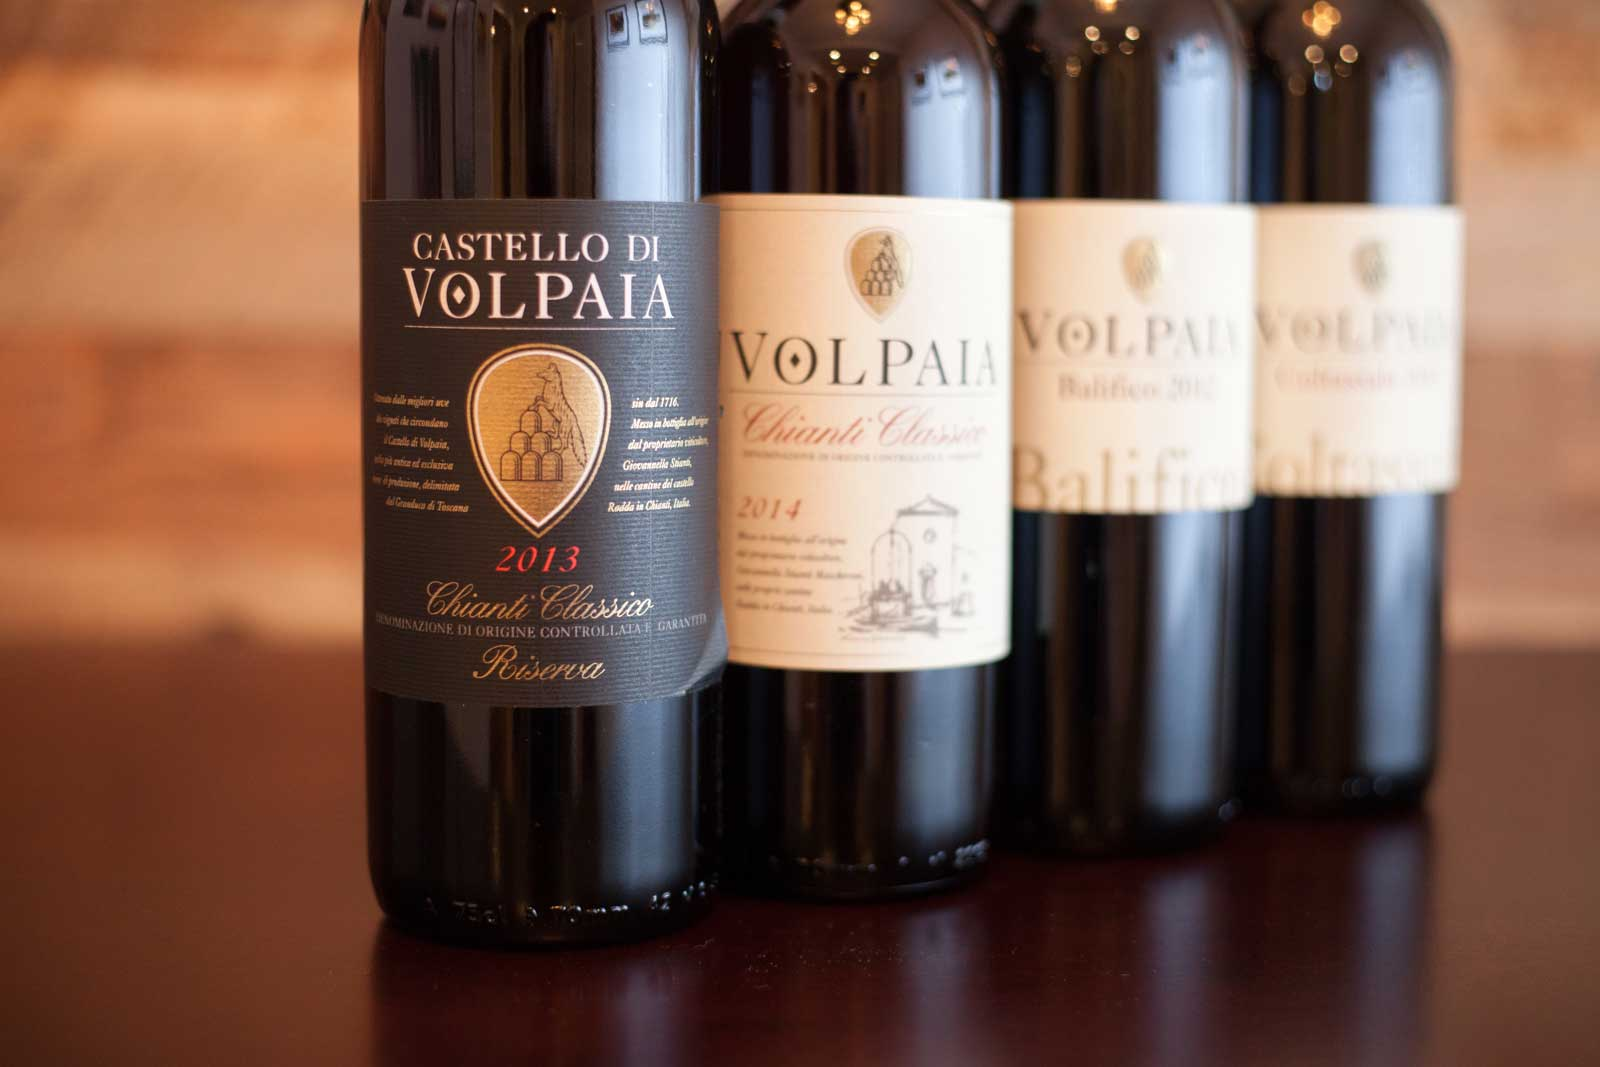 Castello di Volpaia wines of Chianti Classico ©Kevin Day/Opening a Bottle